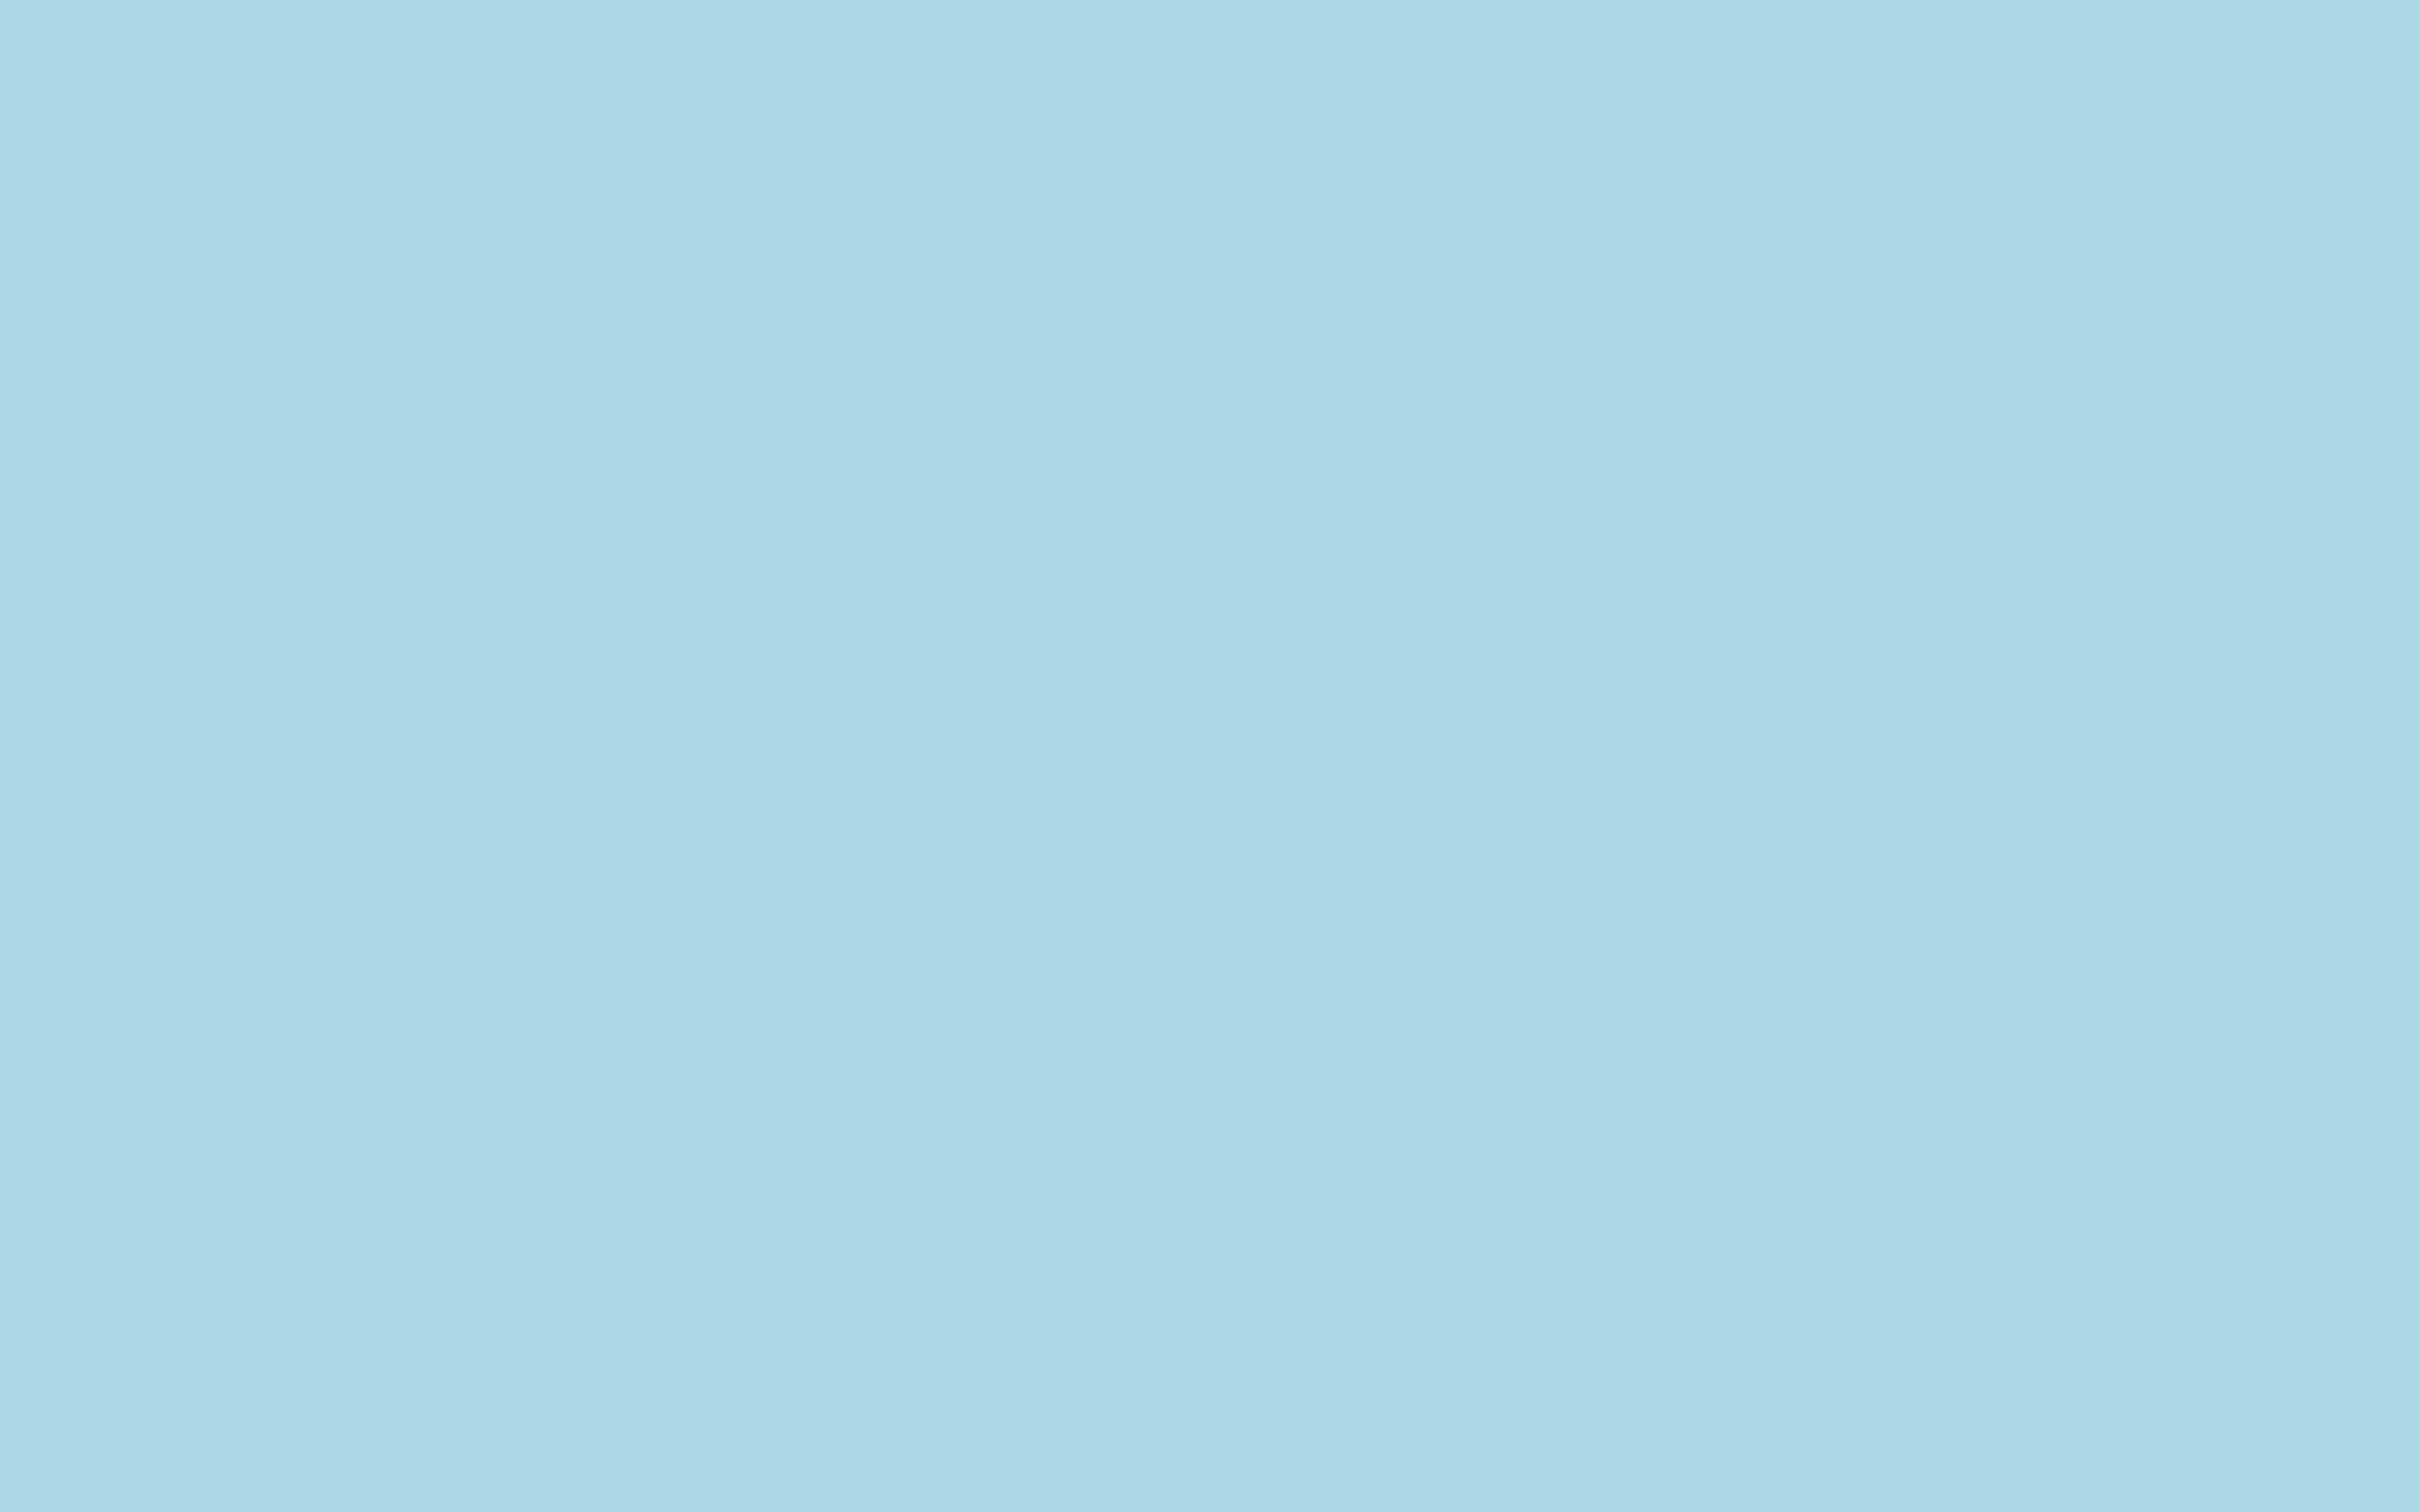 2560x1600 Light Blue Solid Color Background